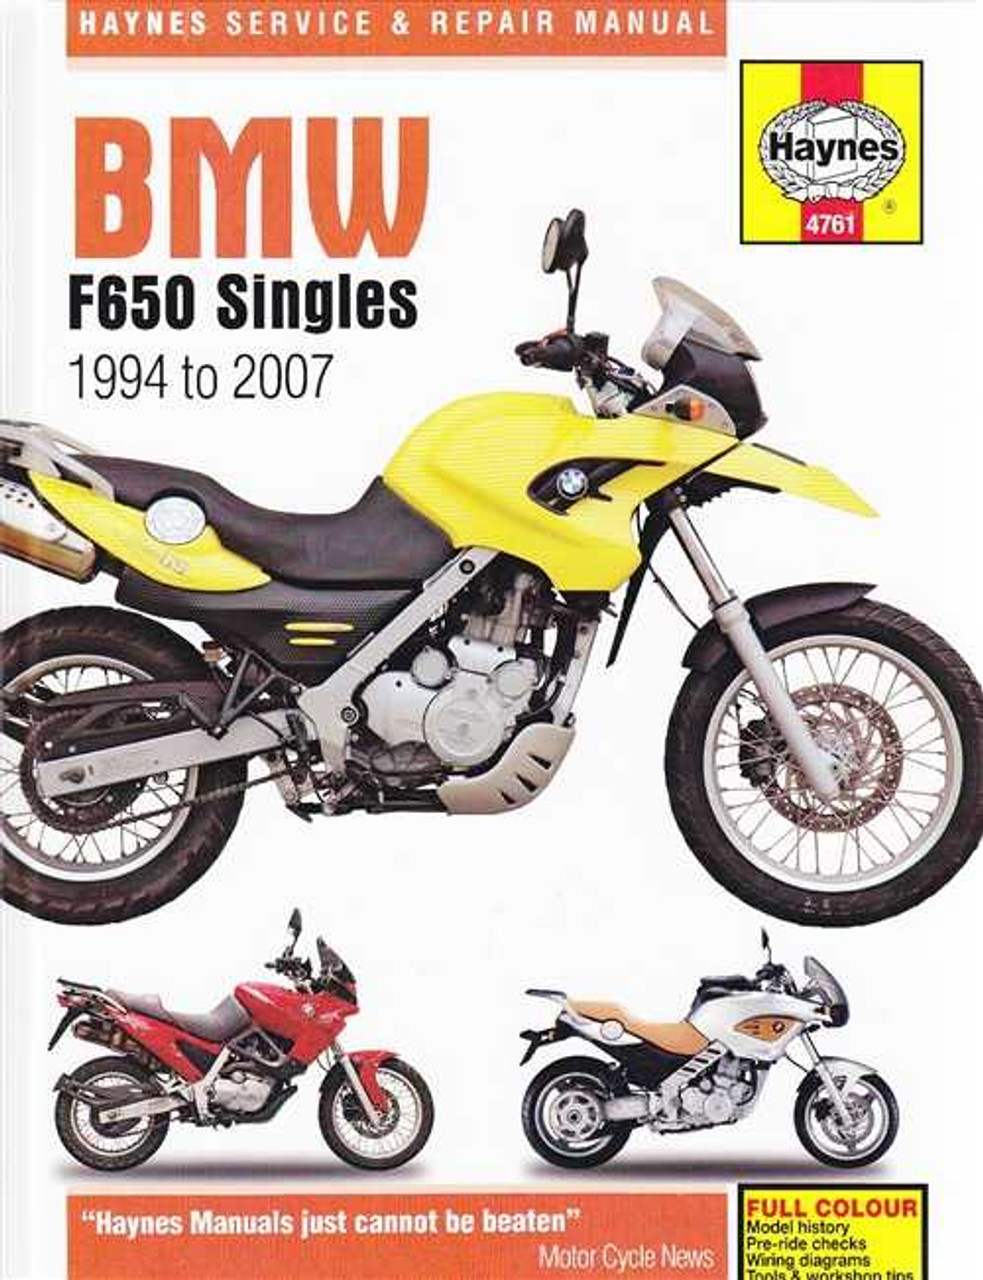 b18971b bmw f650 singles repair manual 39675 1339460525 jpg c 2 imbypass on imbypass on [ 983 x 1280 Pixel ]